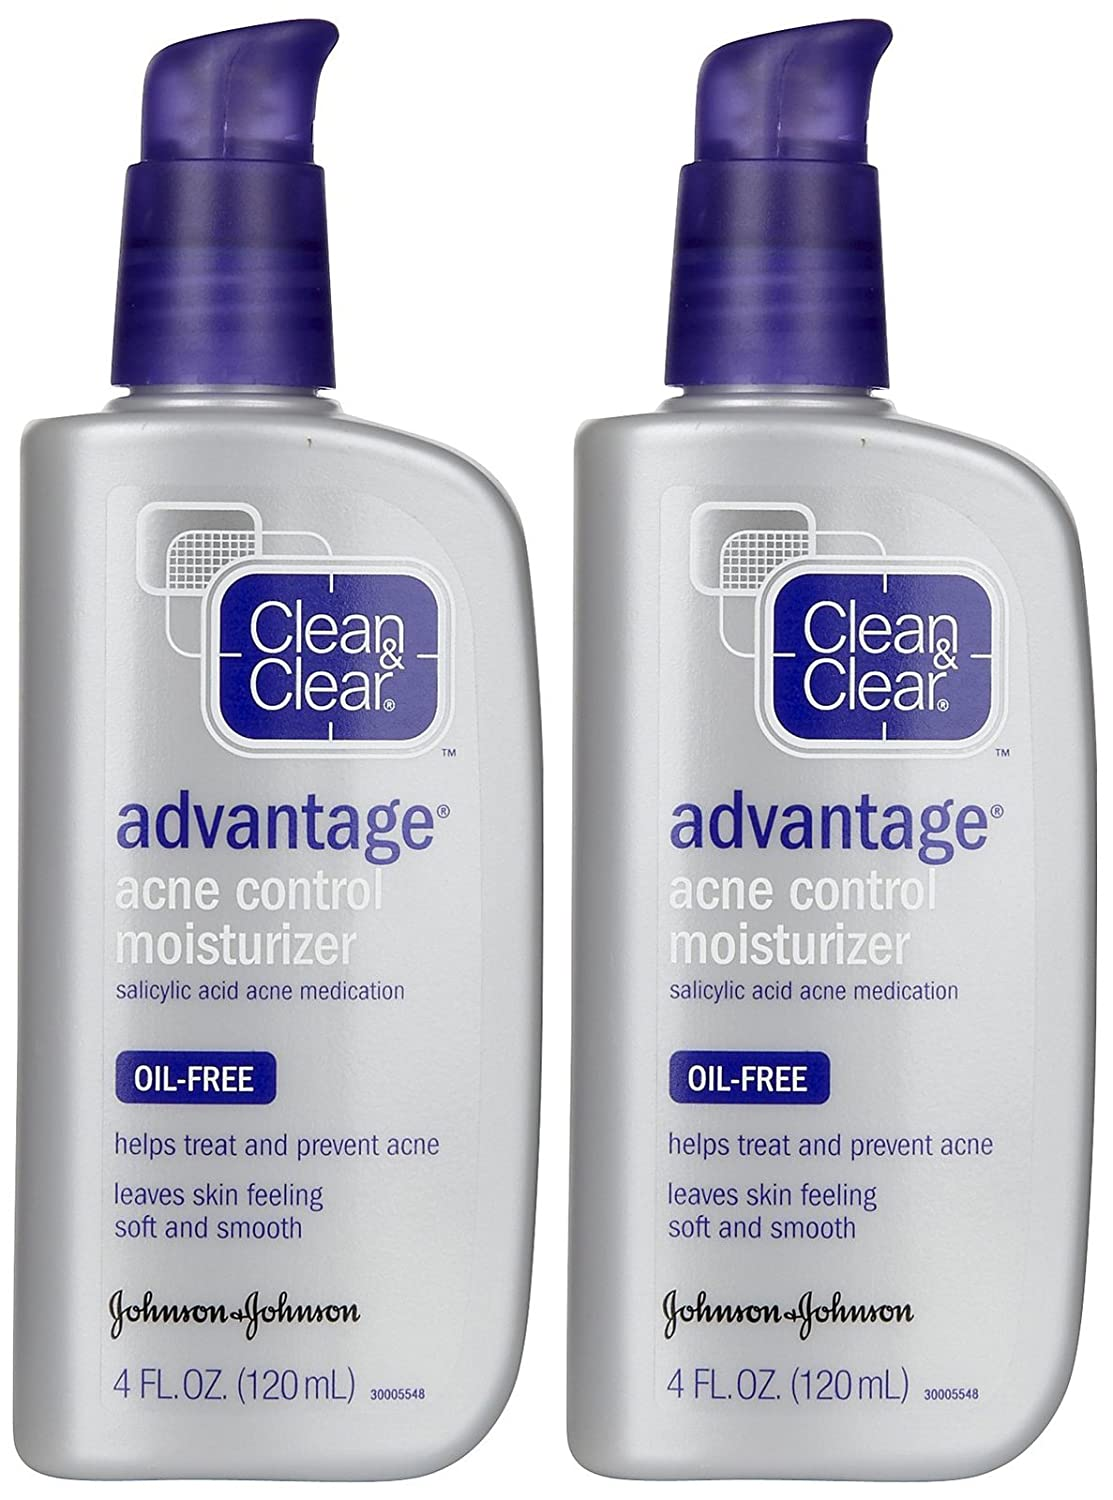 Clean And Clear Advantage Oil Free Acne Moisturizer - 4 Oz, 6 Pack Lip Balm Organic (Vanilla & Honey) 4 Tube Pack Pure and Natural Beeswax Lip Butter with Aloe Vera, Vitamin E for a Clear Gloss Moisturize, Repair Dry, Cracked or Chapped Lips, Best Gift Made in USA